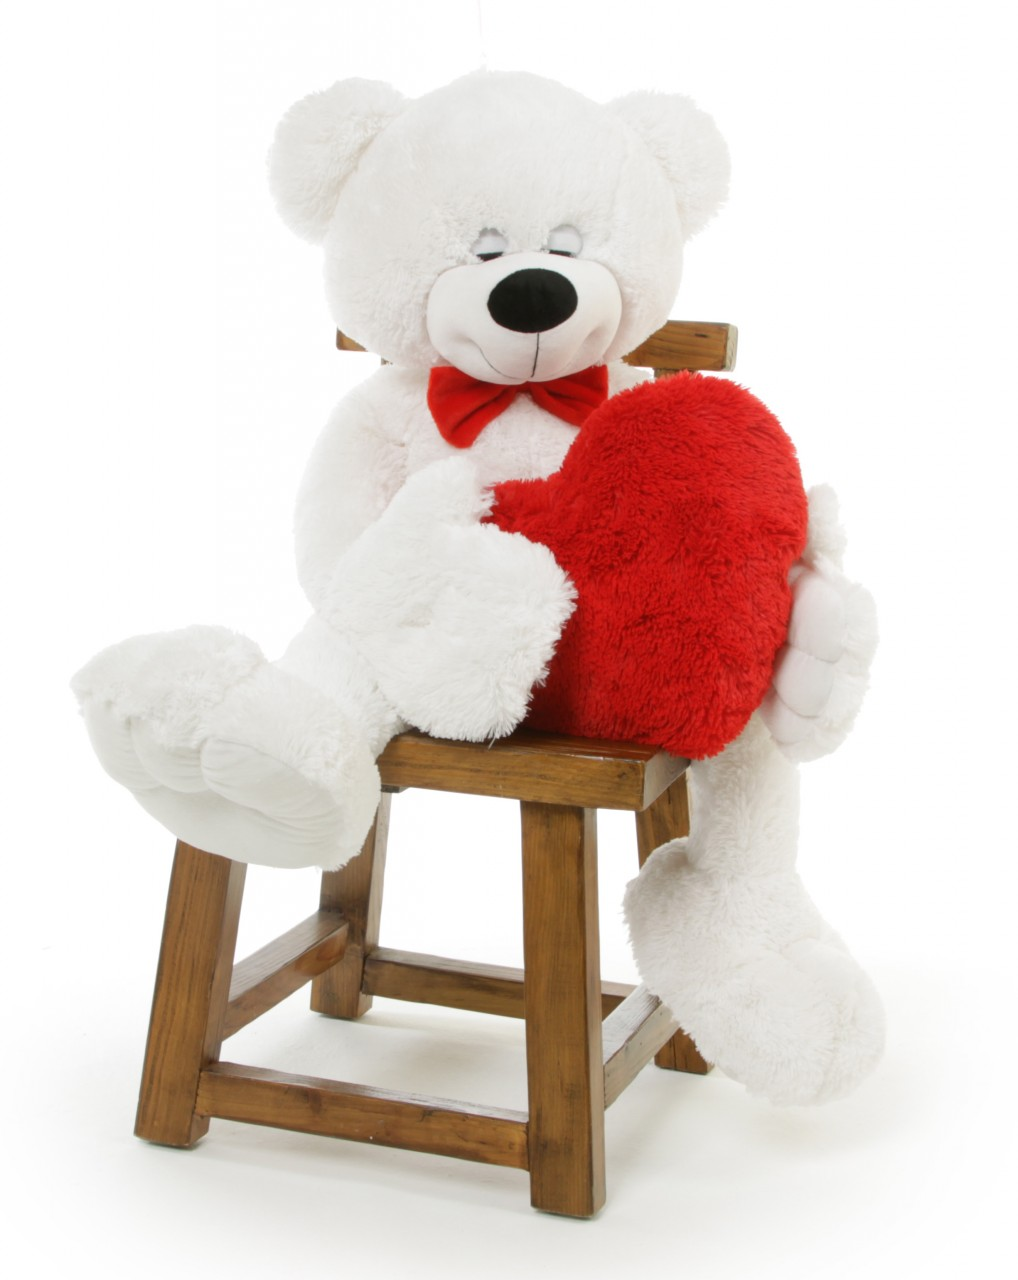 Giant White Teddy Bear Holding A Heart Is A Unique Valentine S Day Gift Idea 52in